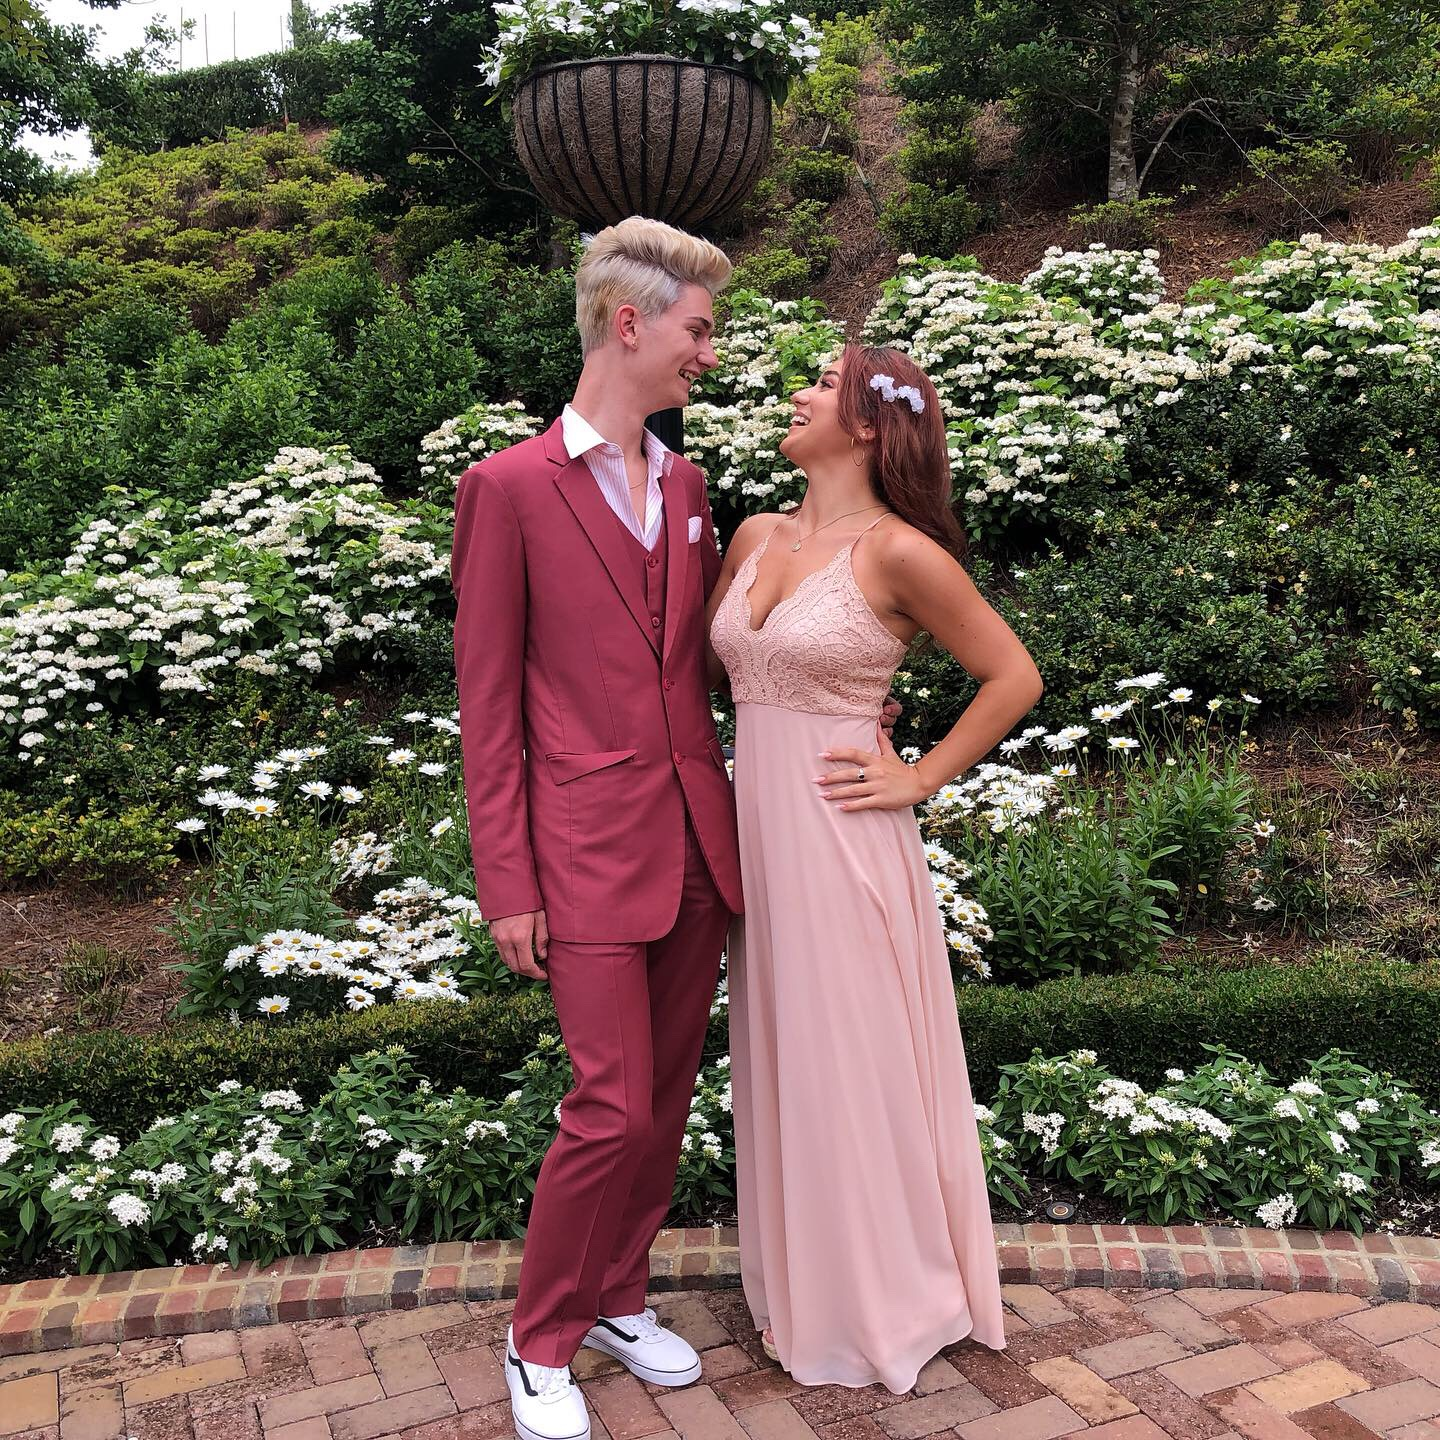 Senior Tristan Hicks (left) and junior Olivia Nery (right) stand for a picture at the Cavalier on June 8, 2019.